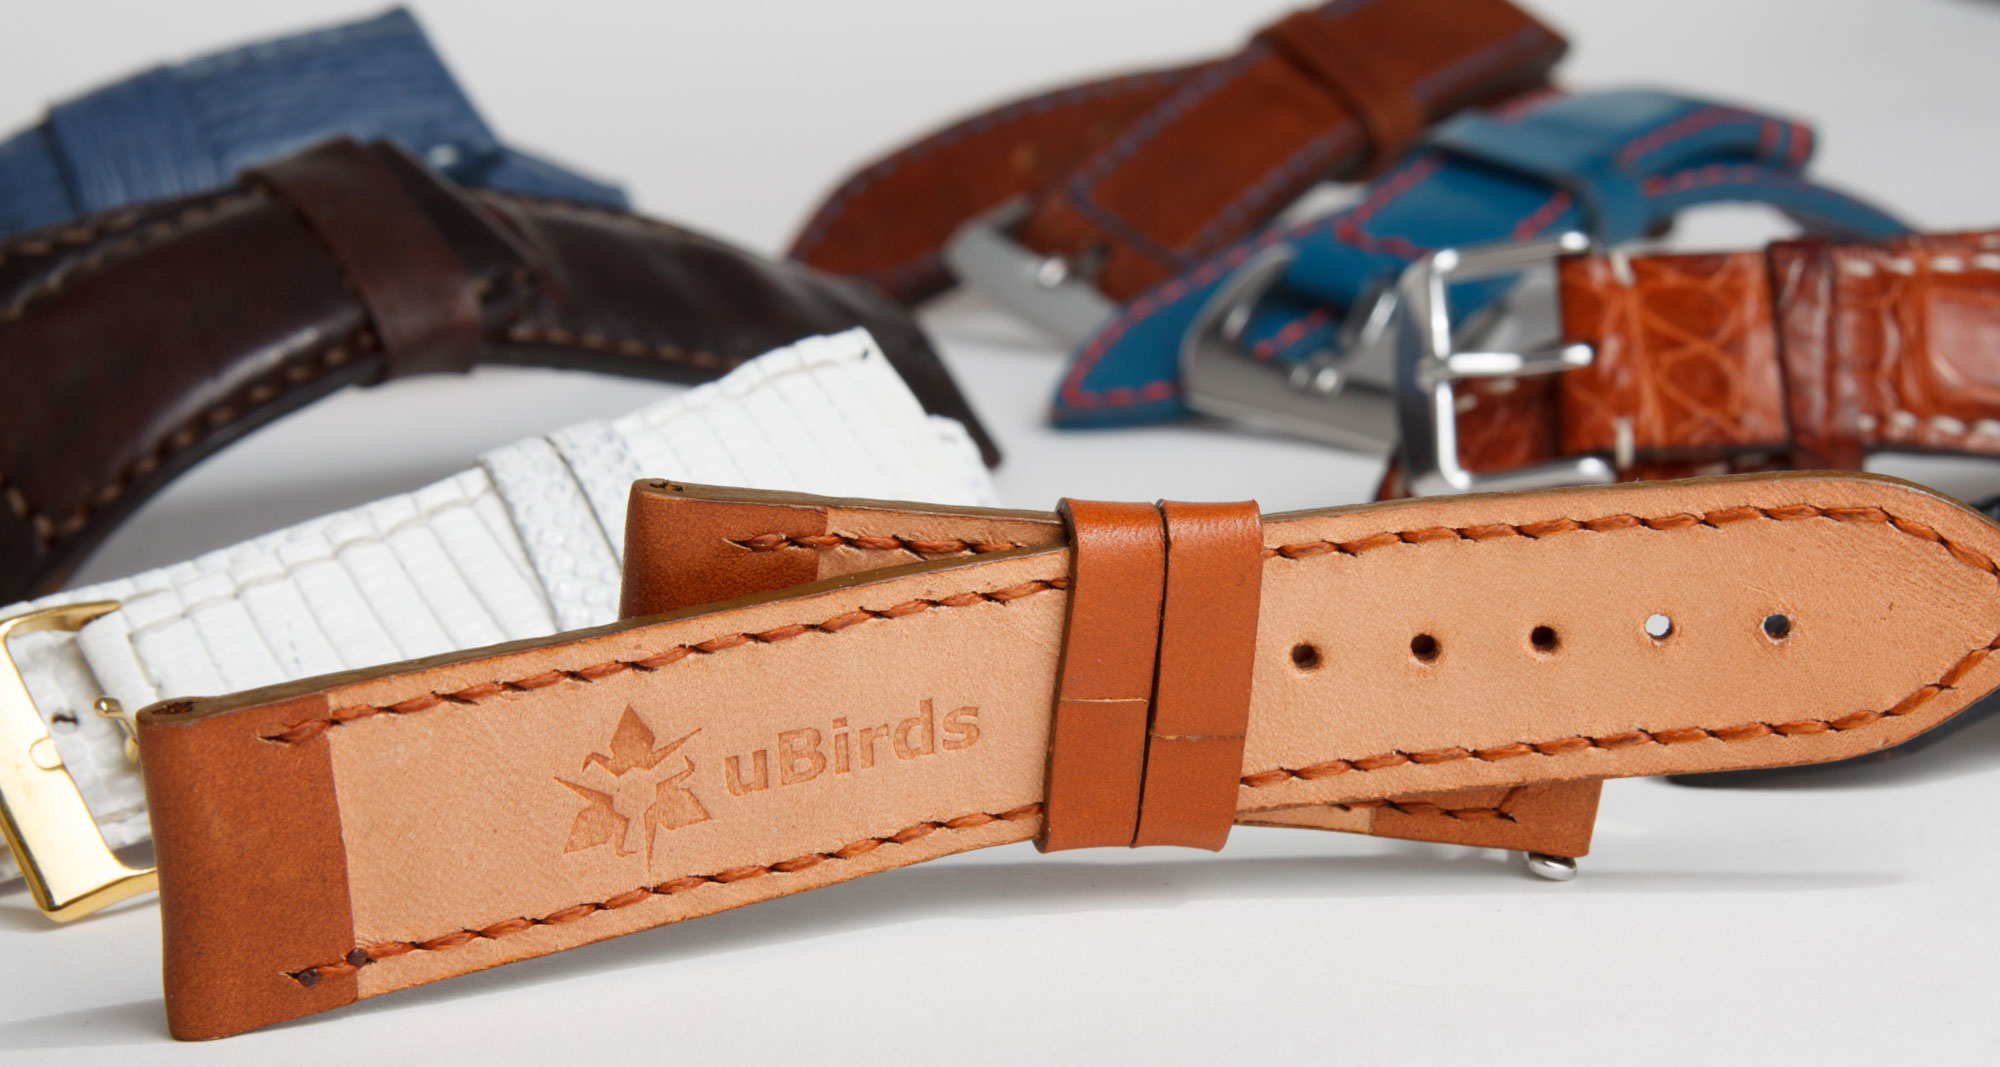 The Unique strap from uBirds offers a host of smartwatch features